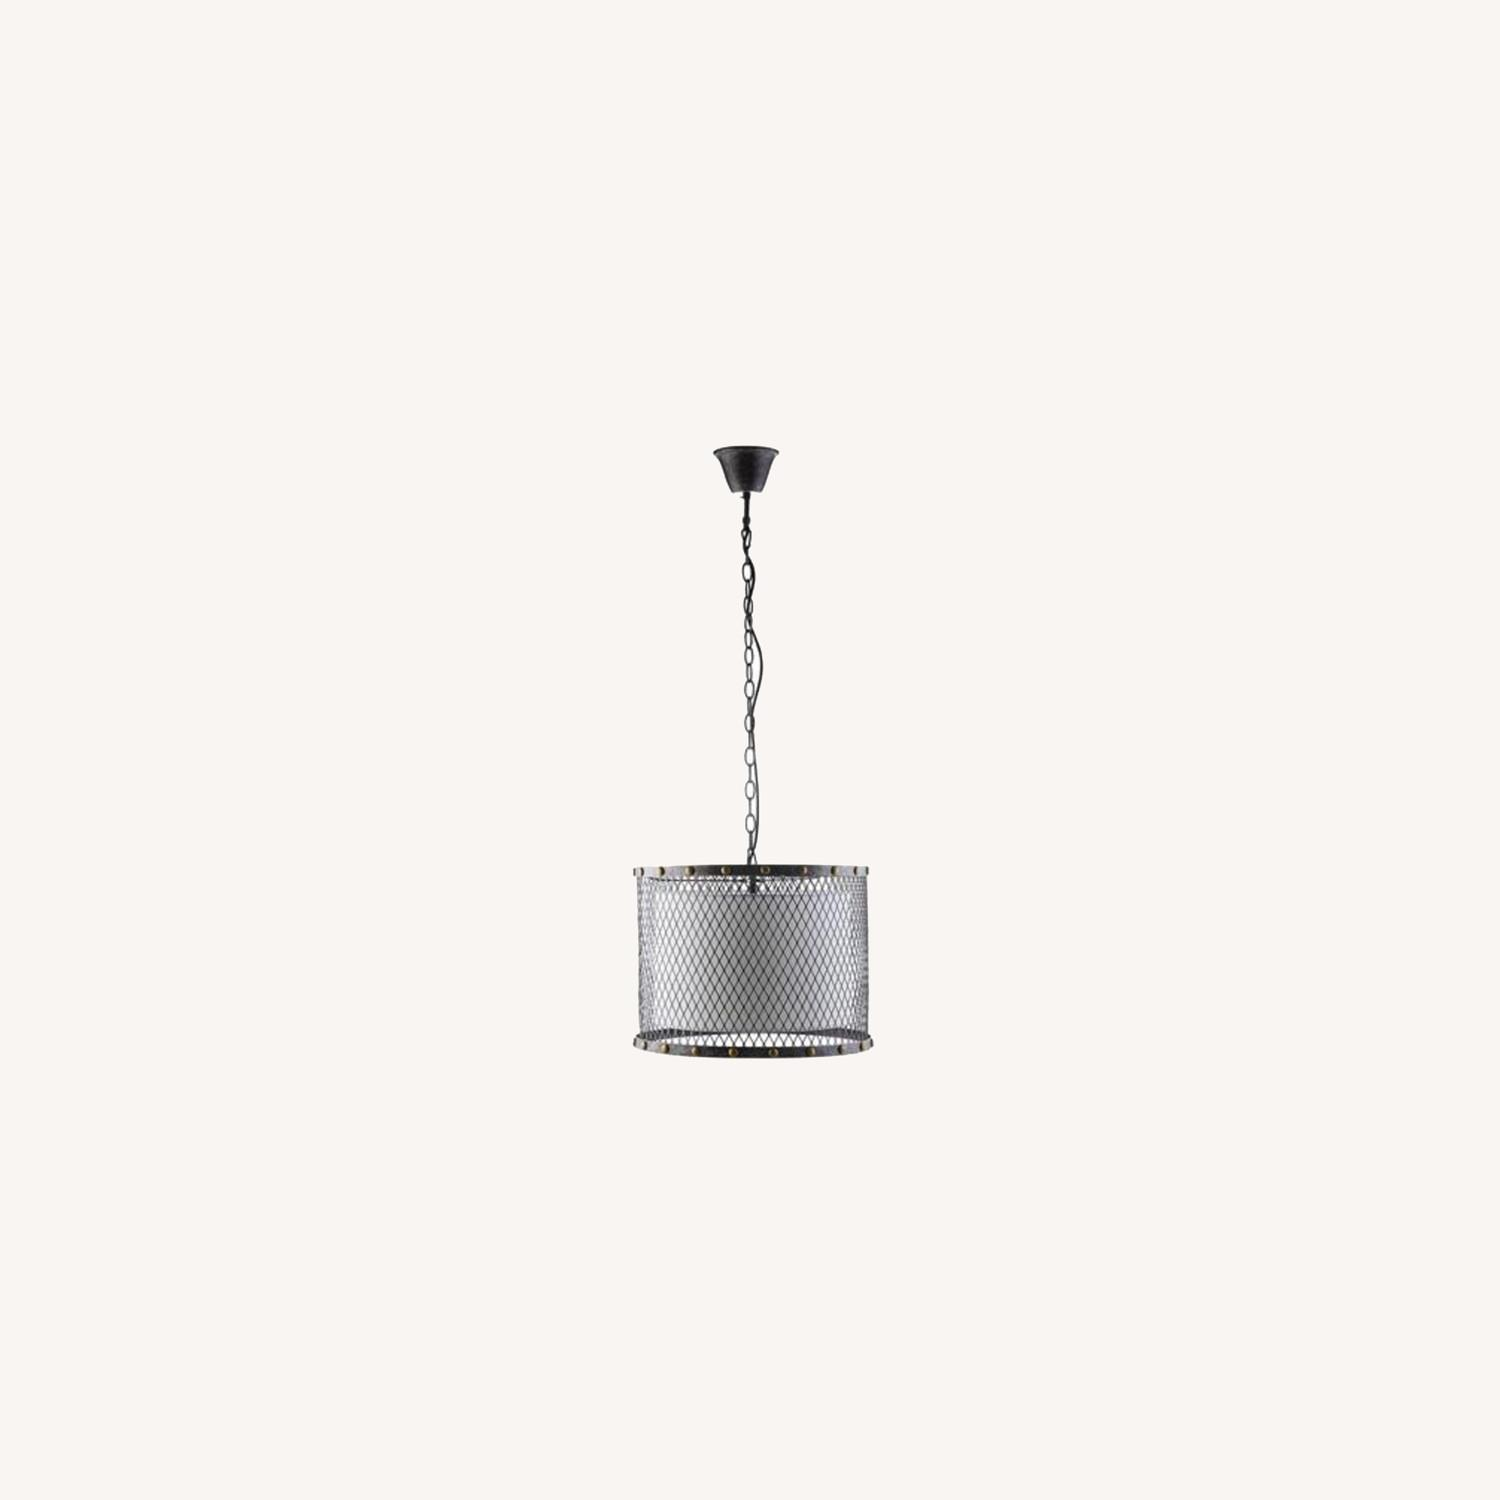 Modern Chandelier In Iron-Tinted Steel Finish - image-5